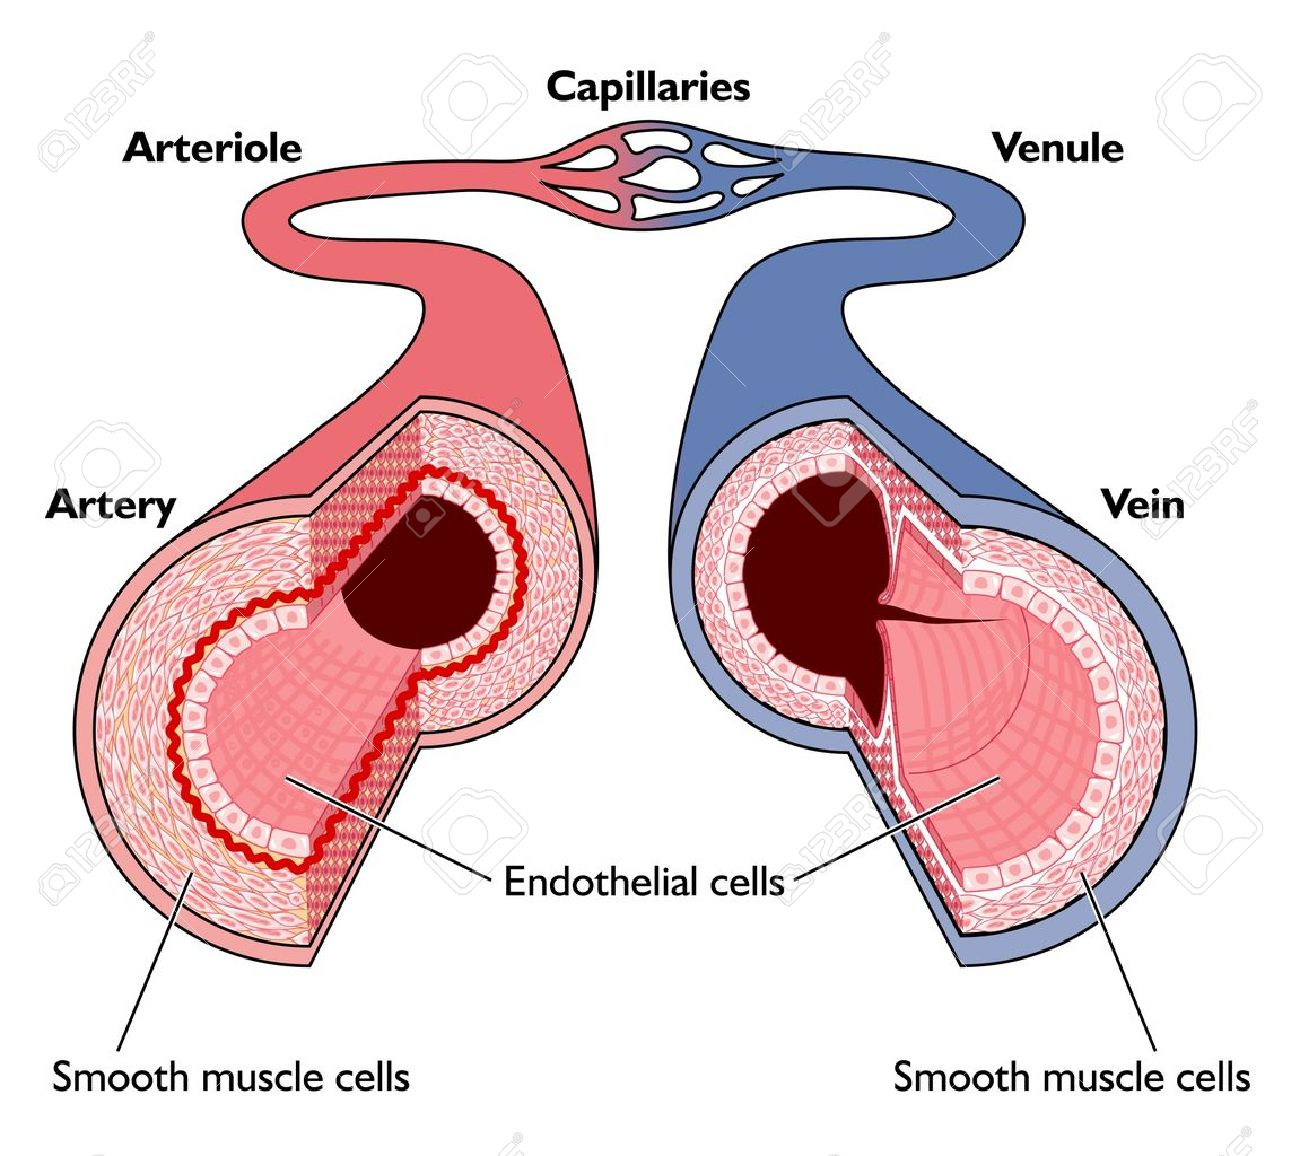 Cross Section of Veins Arteries And Capillaries Capillaries Cross Section of